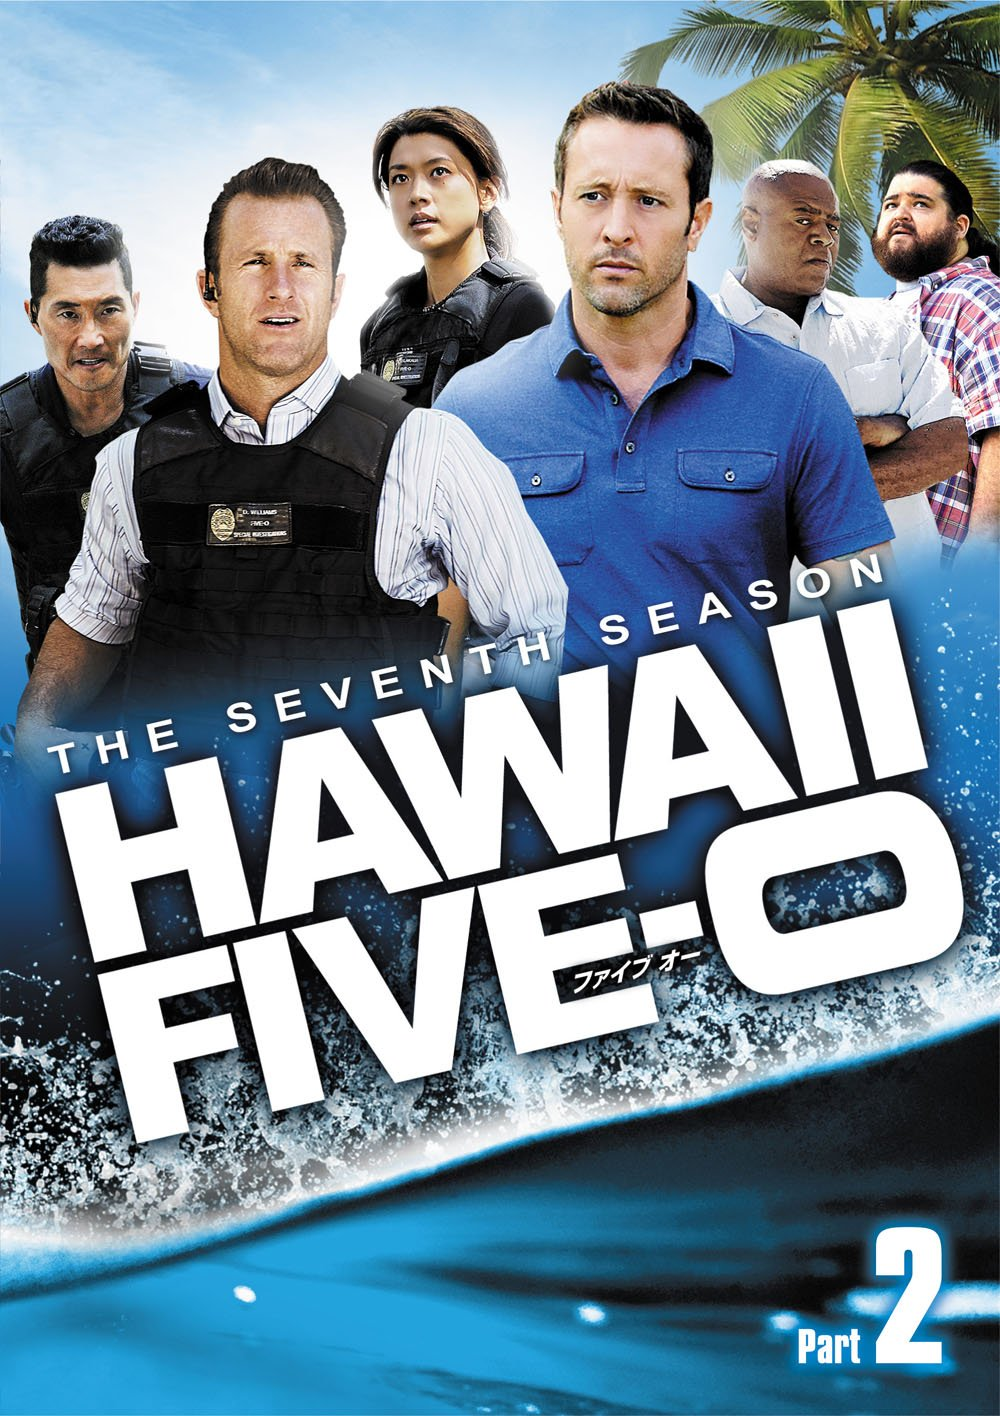 Hawaii Five-0 シーズン7 DVD-BOX Part2(6枚組) B076HB2WH7